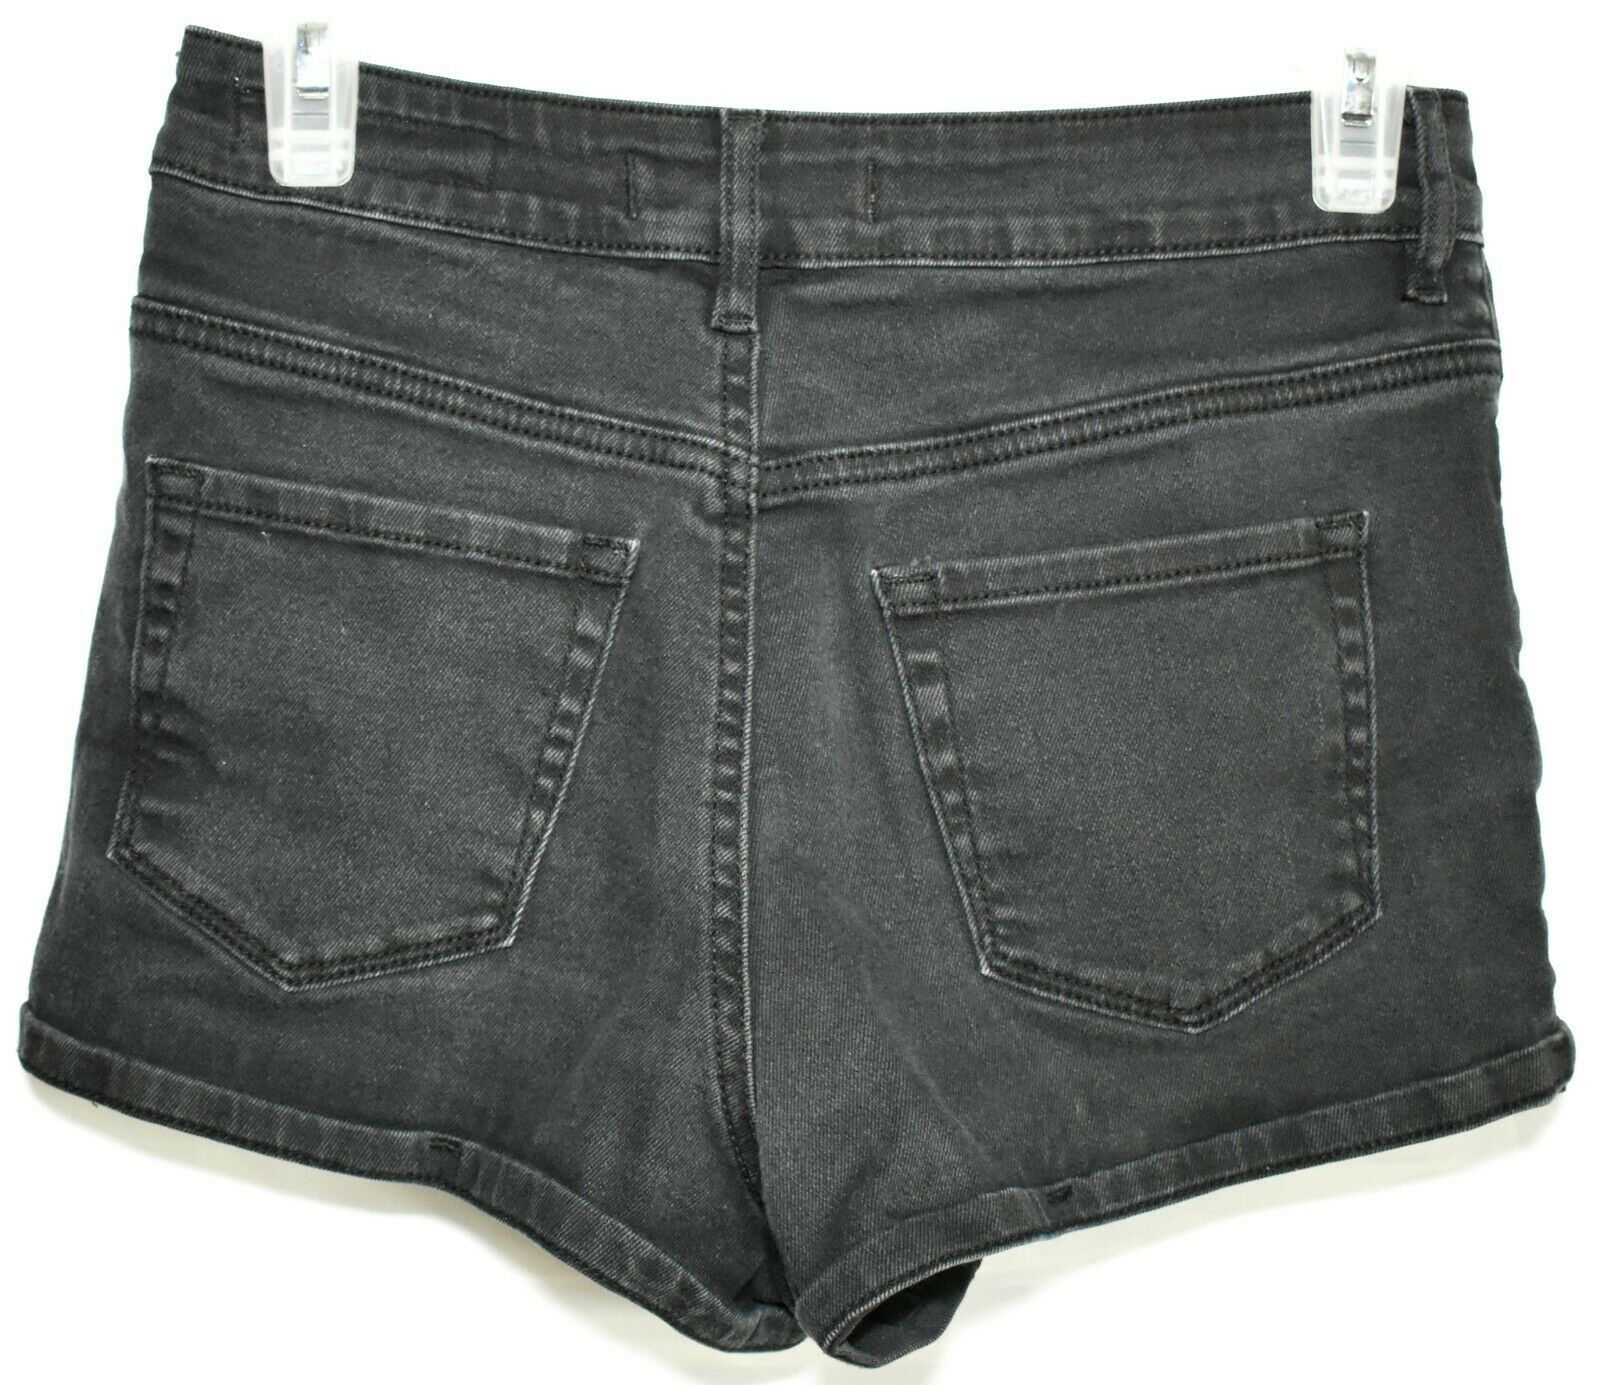 Bullhead Denim Black Super Hi-Rise Shorty Shorts Size 5